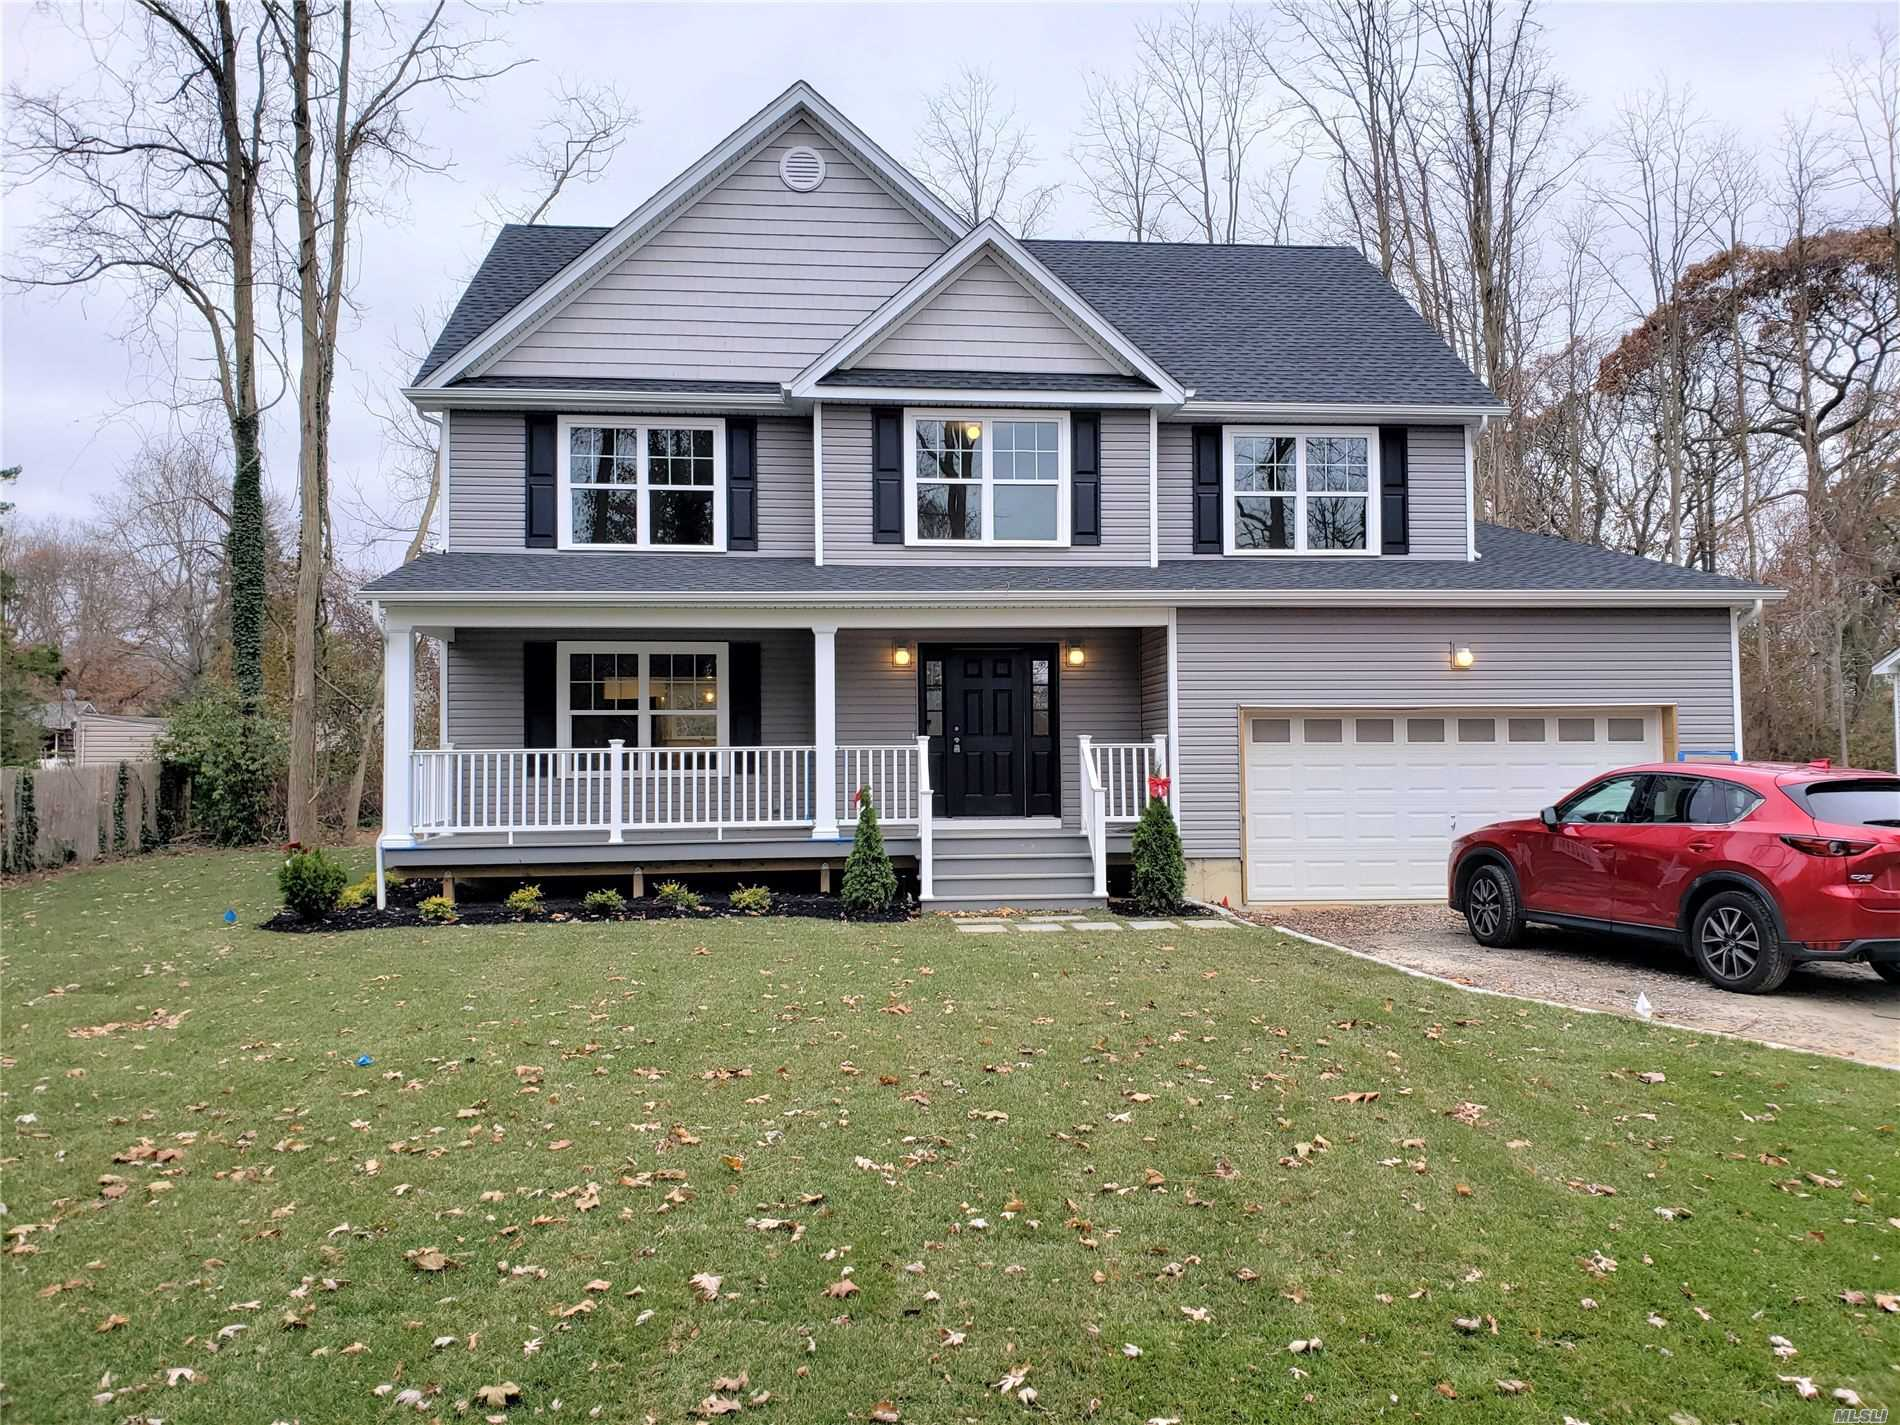 New To Be Built 2 Spacious Post Moderns Approx 2, 400 To 2, 550 Sq Ft. Featuring Hardwood Flooring, Natural Gas, Central Air, Full 8' Basement, Custom Moldings, Fireplace, Eik With White Cabinets, Granite & Center Island, Master Suite W/Bath & Dream Walk-In Closest, 2 Car Garage, 200 Amp Service, 2nd Story Laundry, Energy Star Rated! All This Situated On Huge Half Acre+ Lots On Beautiful Dead End Street. Still Time To Customize!!!